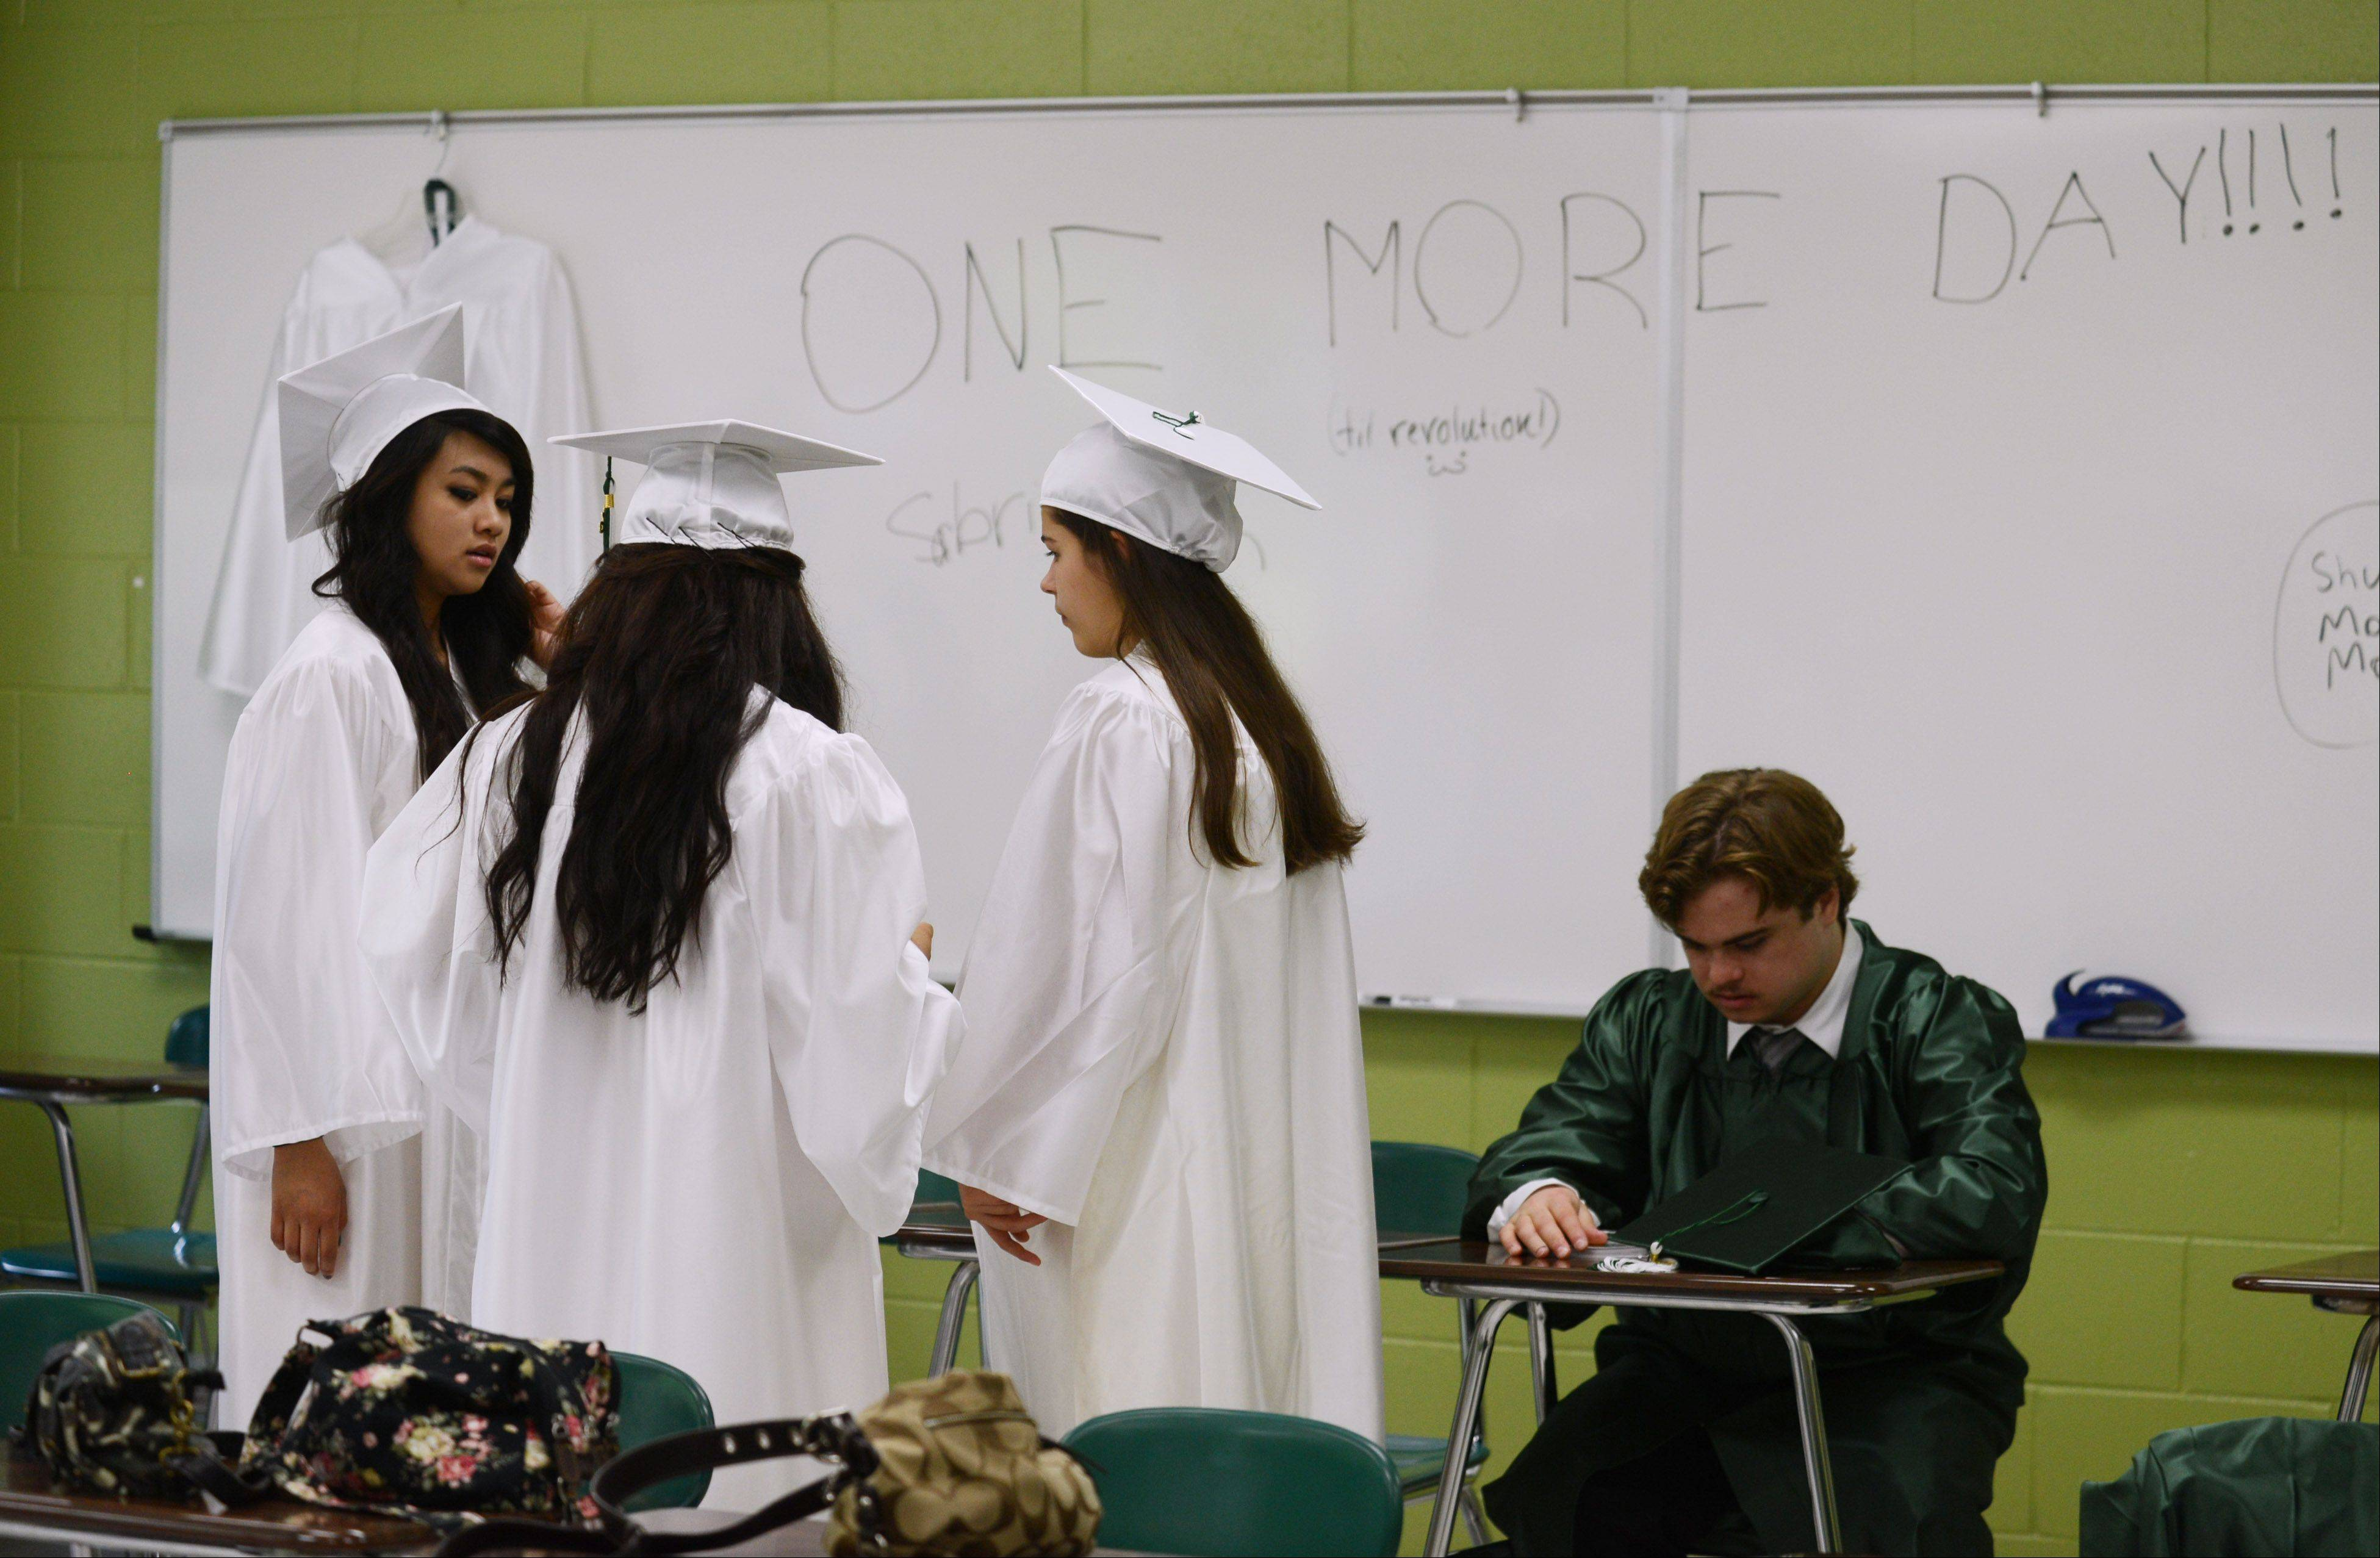 Images from the Grayslake Central High School graduation on Sunday, May 19 in Grayslake.